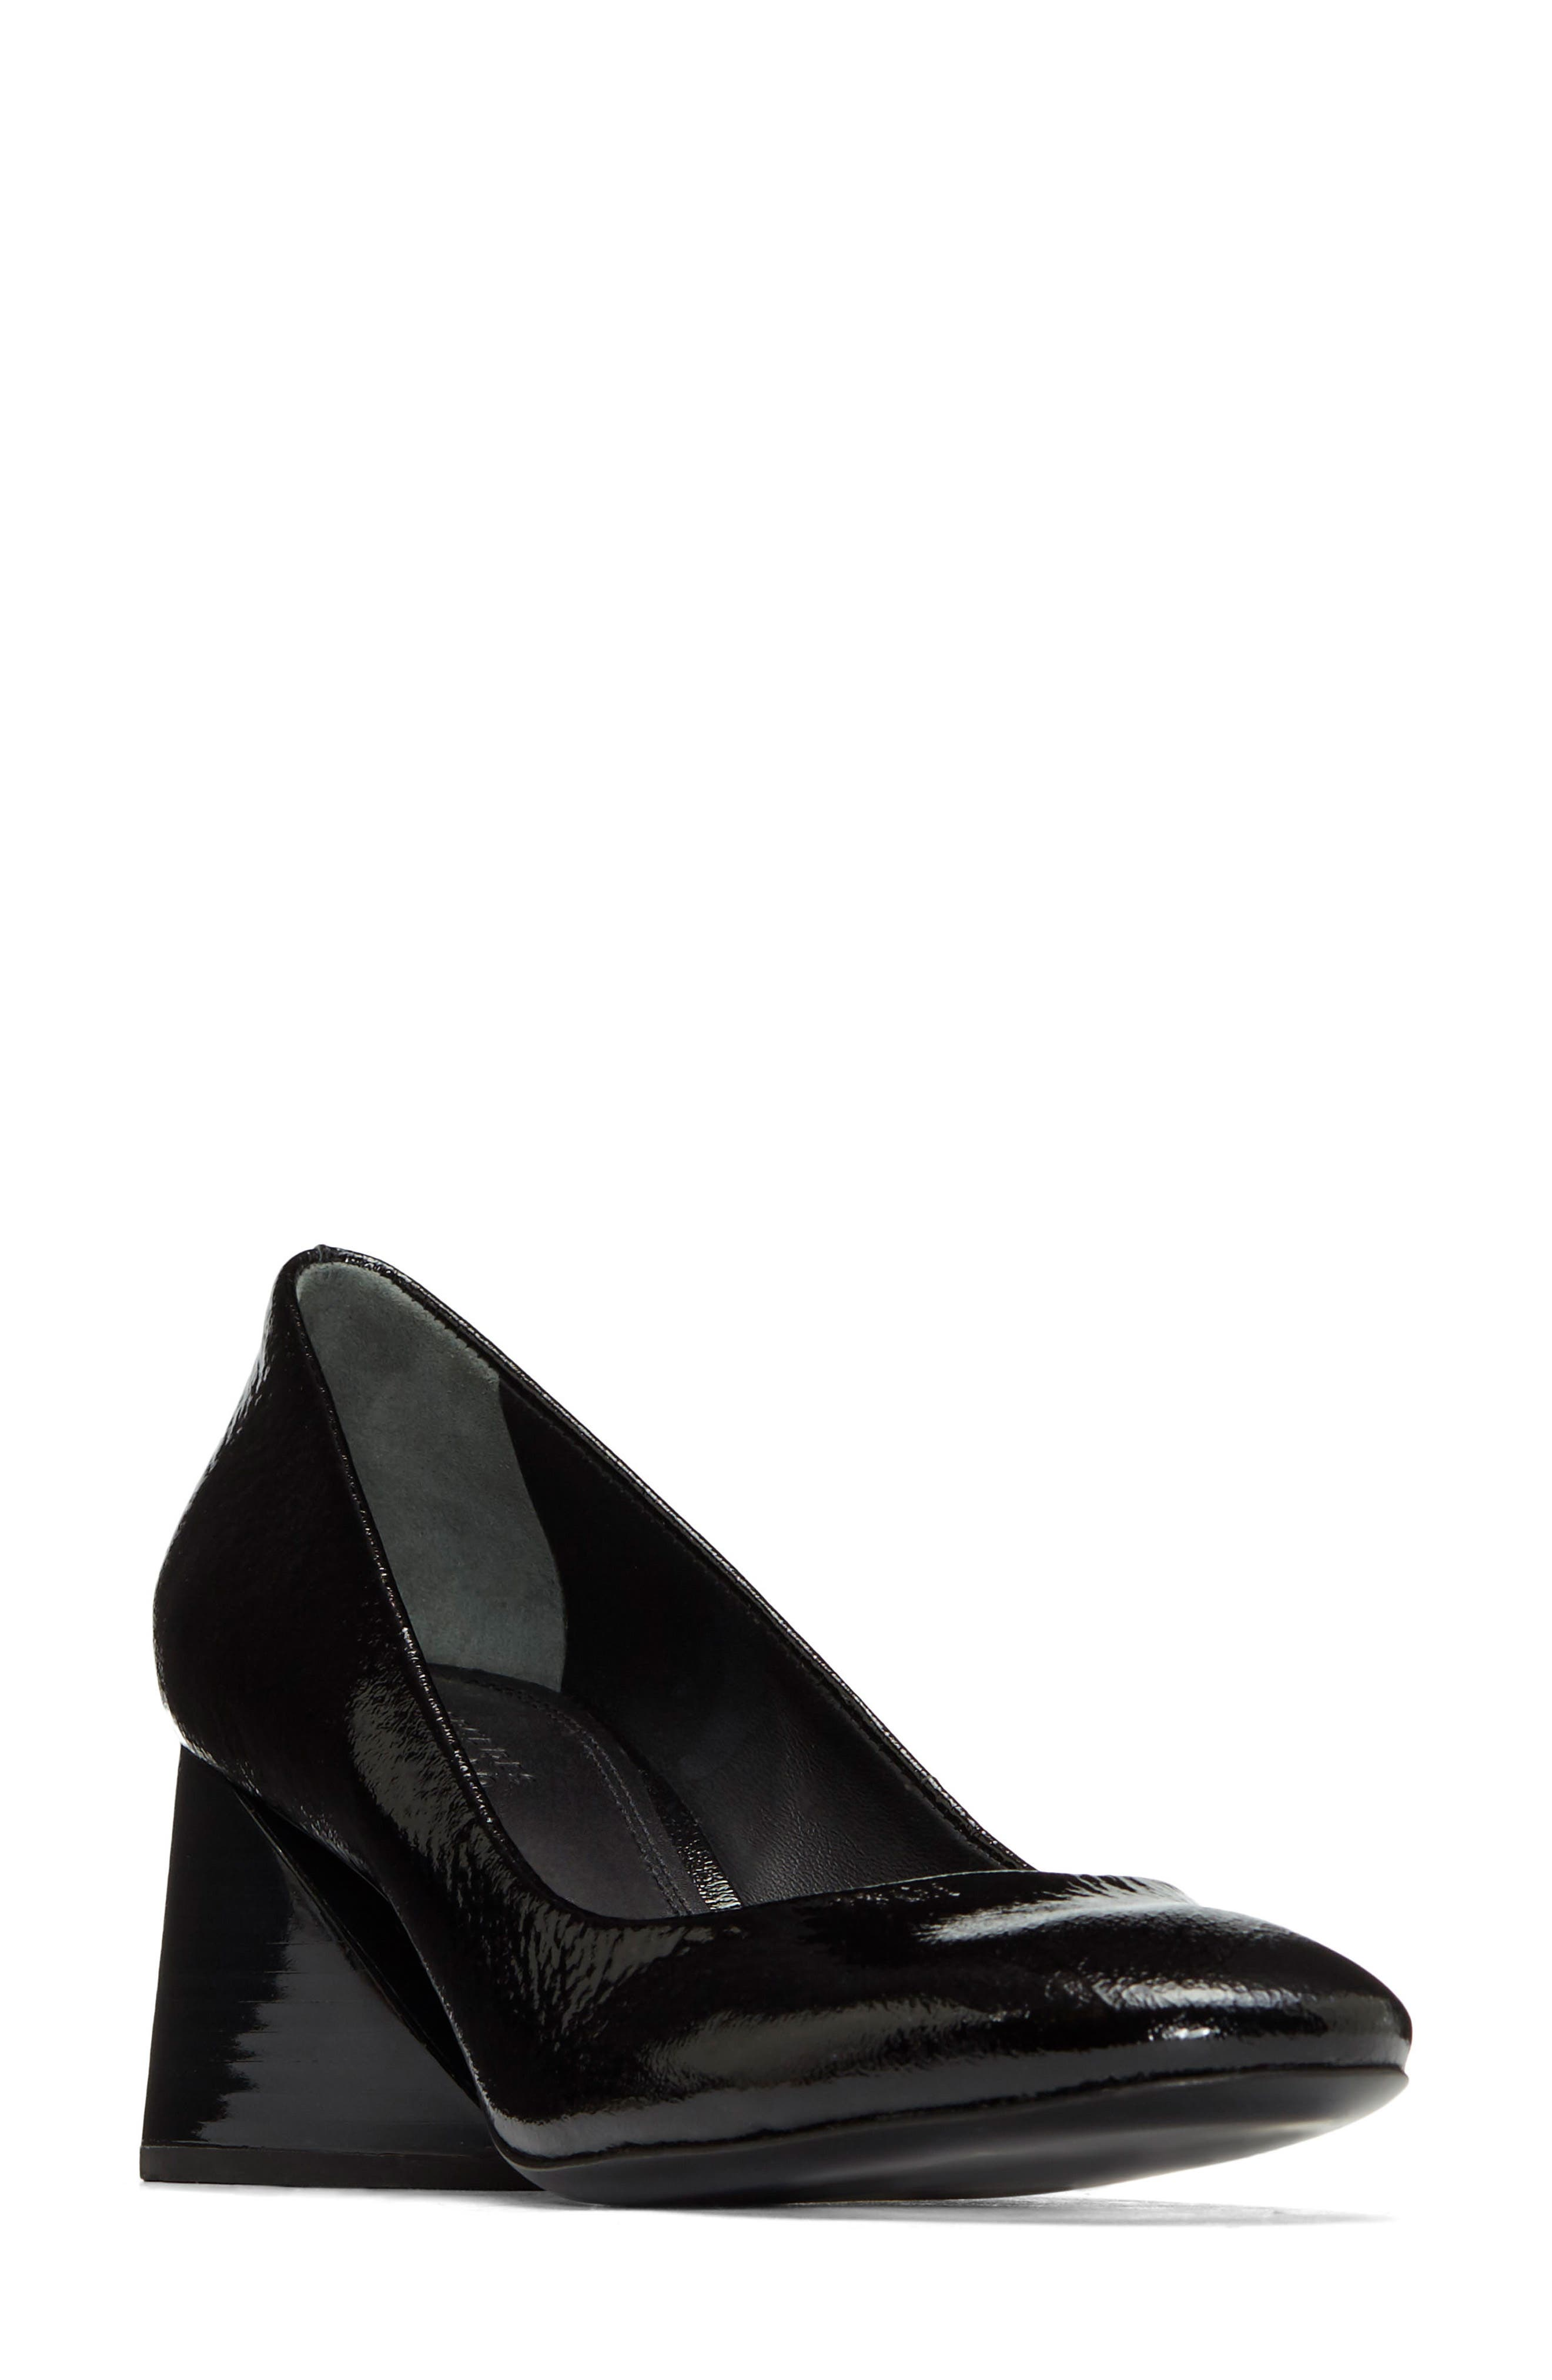 Atia Statement Heel Pump,                         Main,                         color, 001